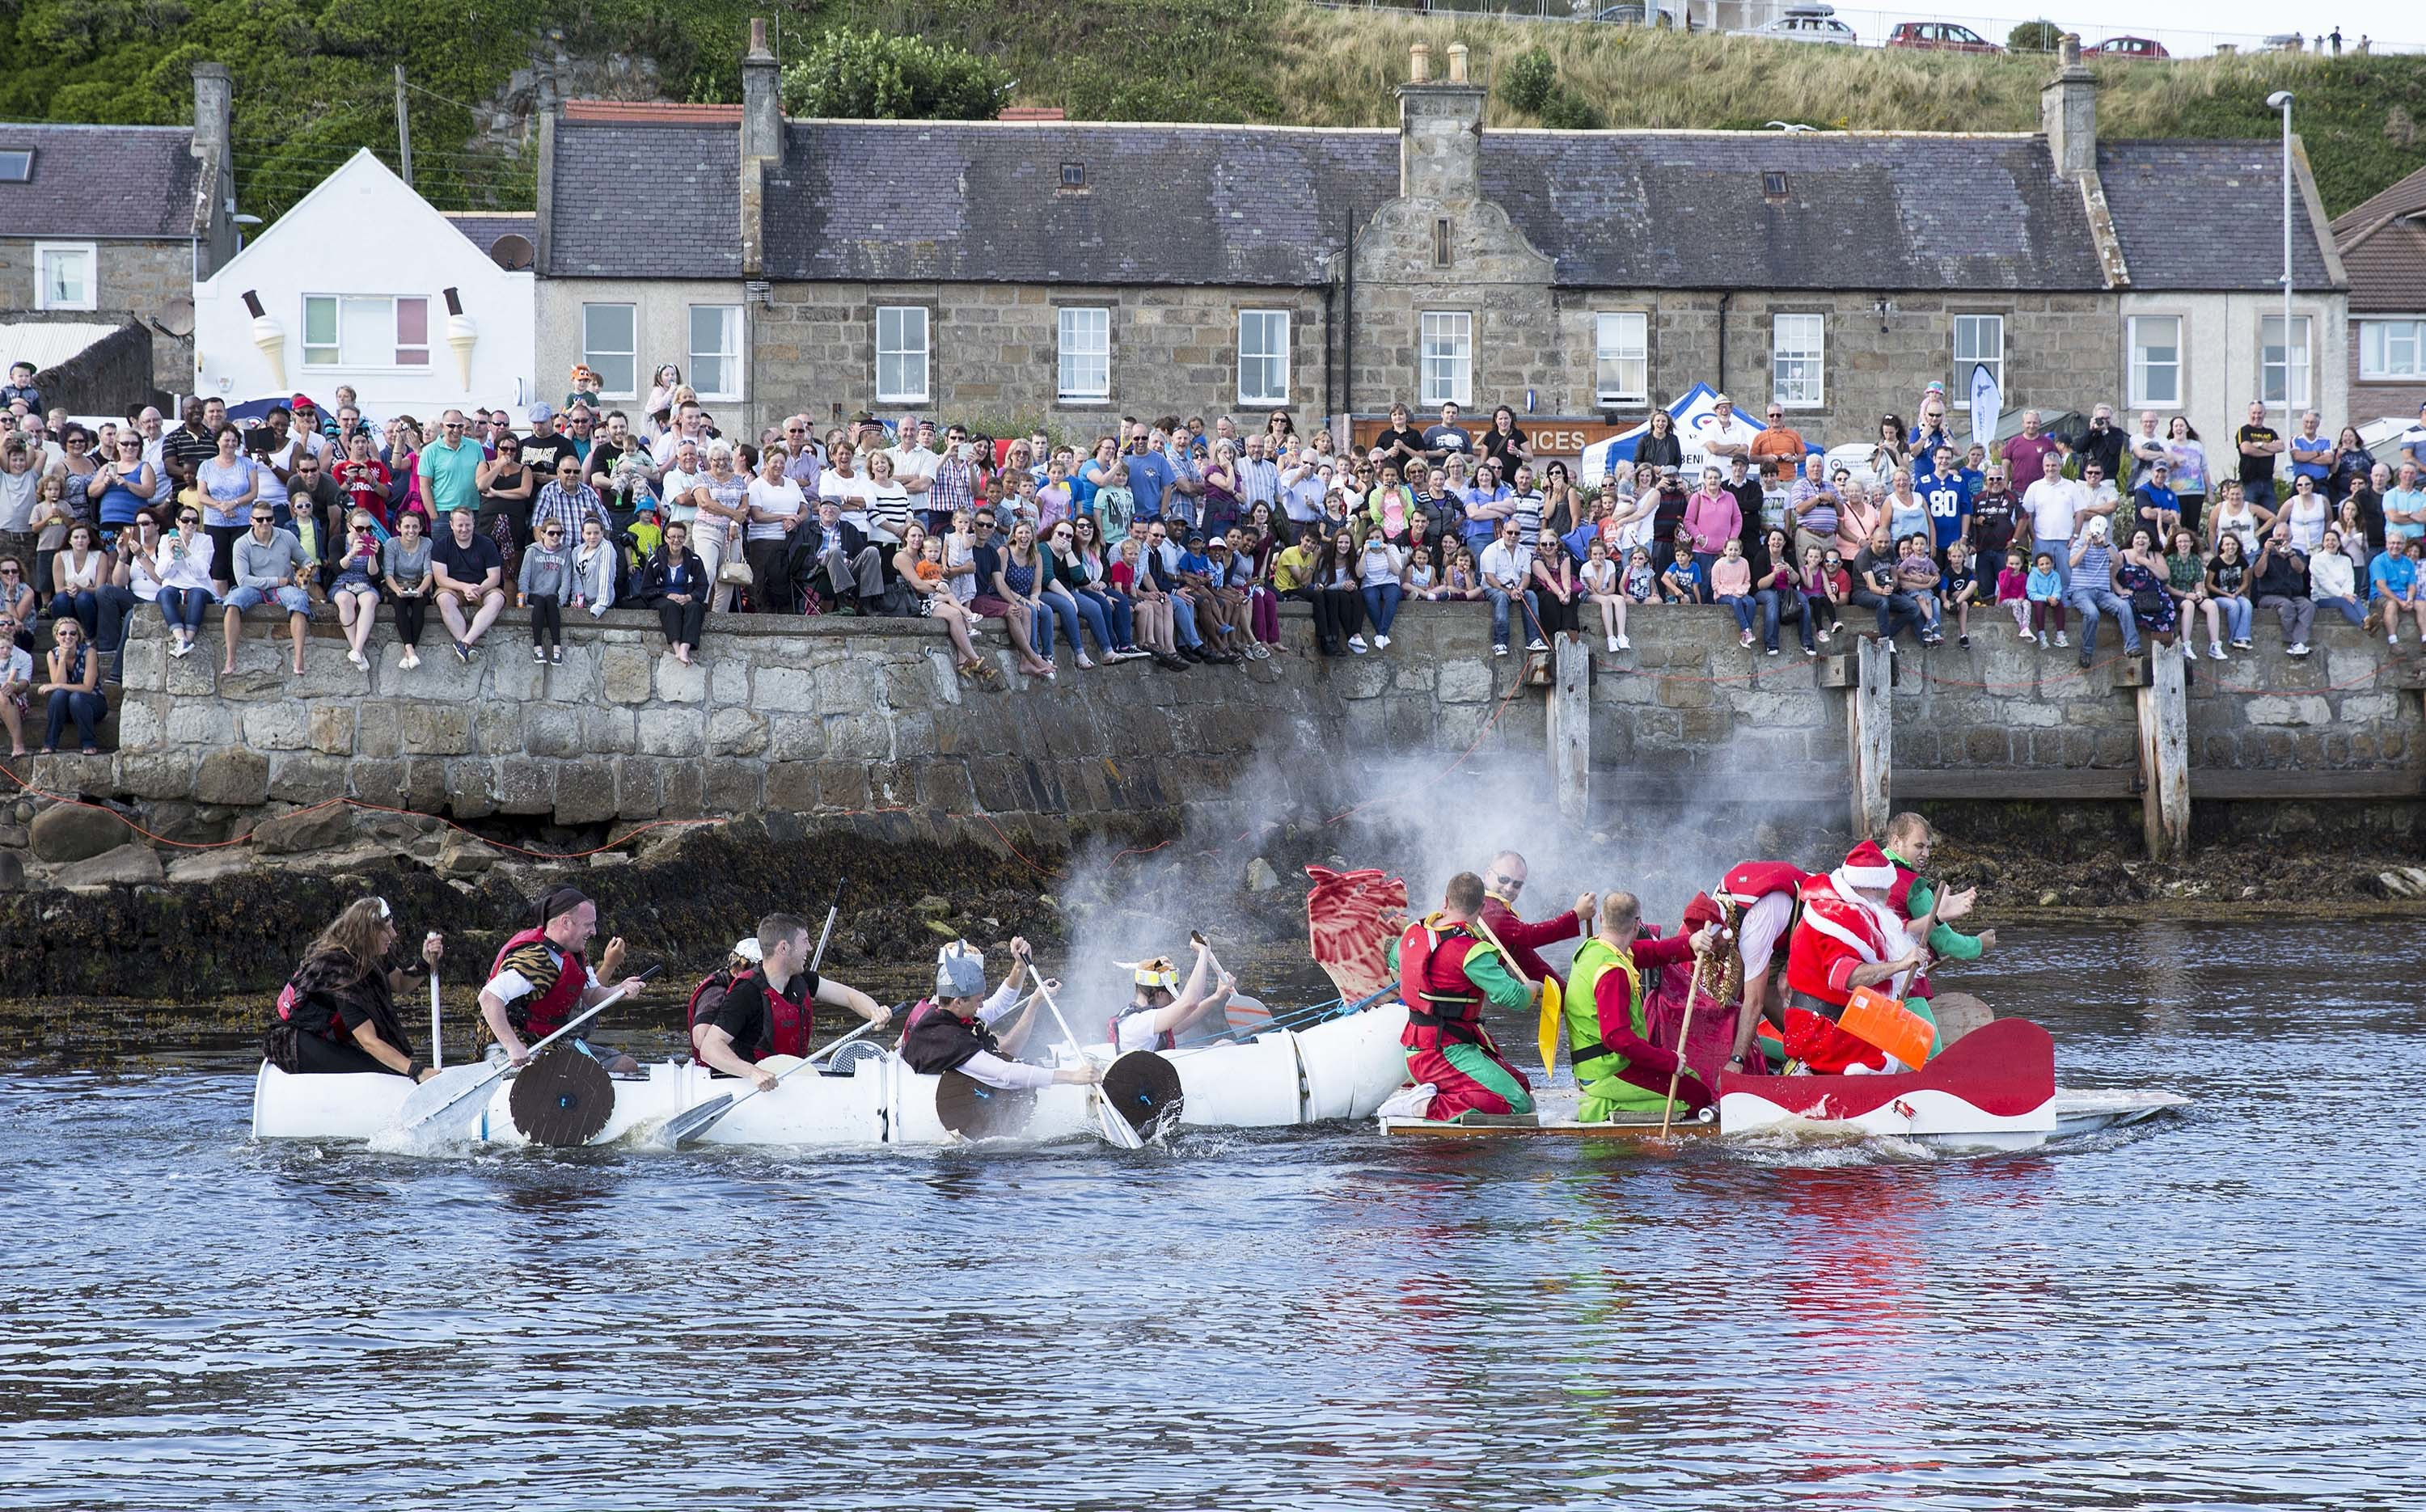 RAF Lossiemouth's raft race will make its return this year, after last year's event was called off.